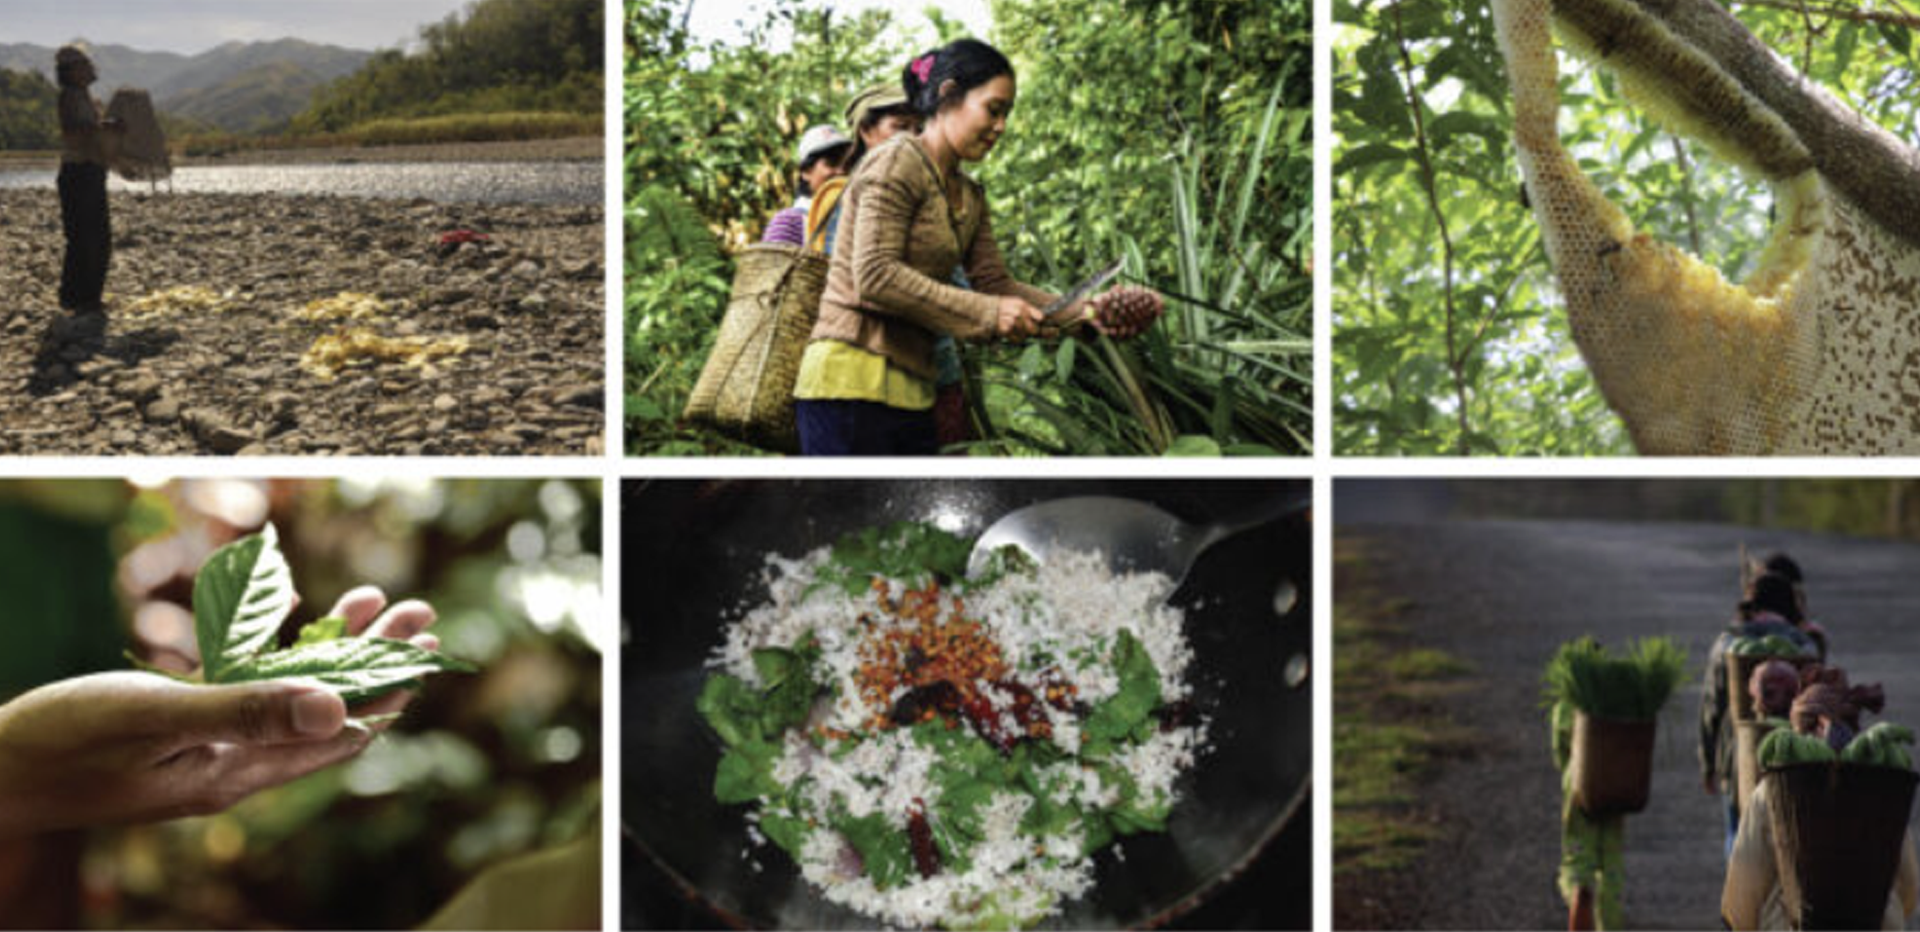 Virtual Forum recap: Experiences and outlooks on wild foods and Indigenous food systems in Asia